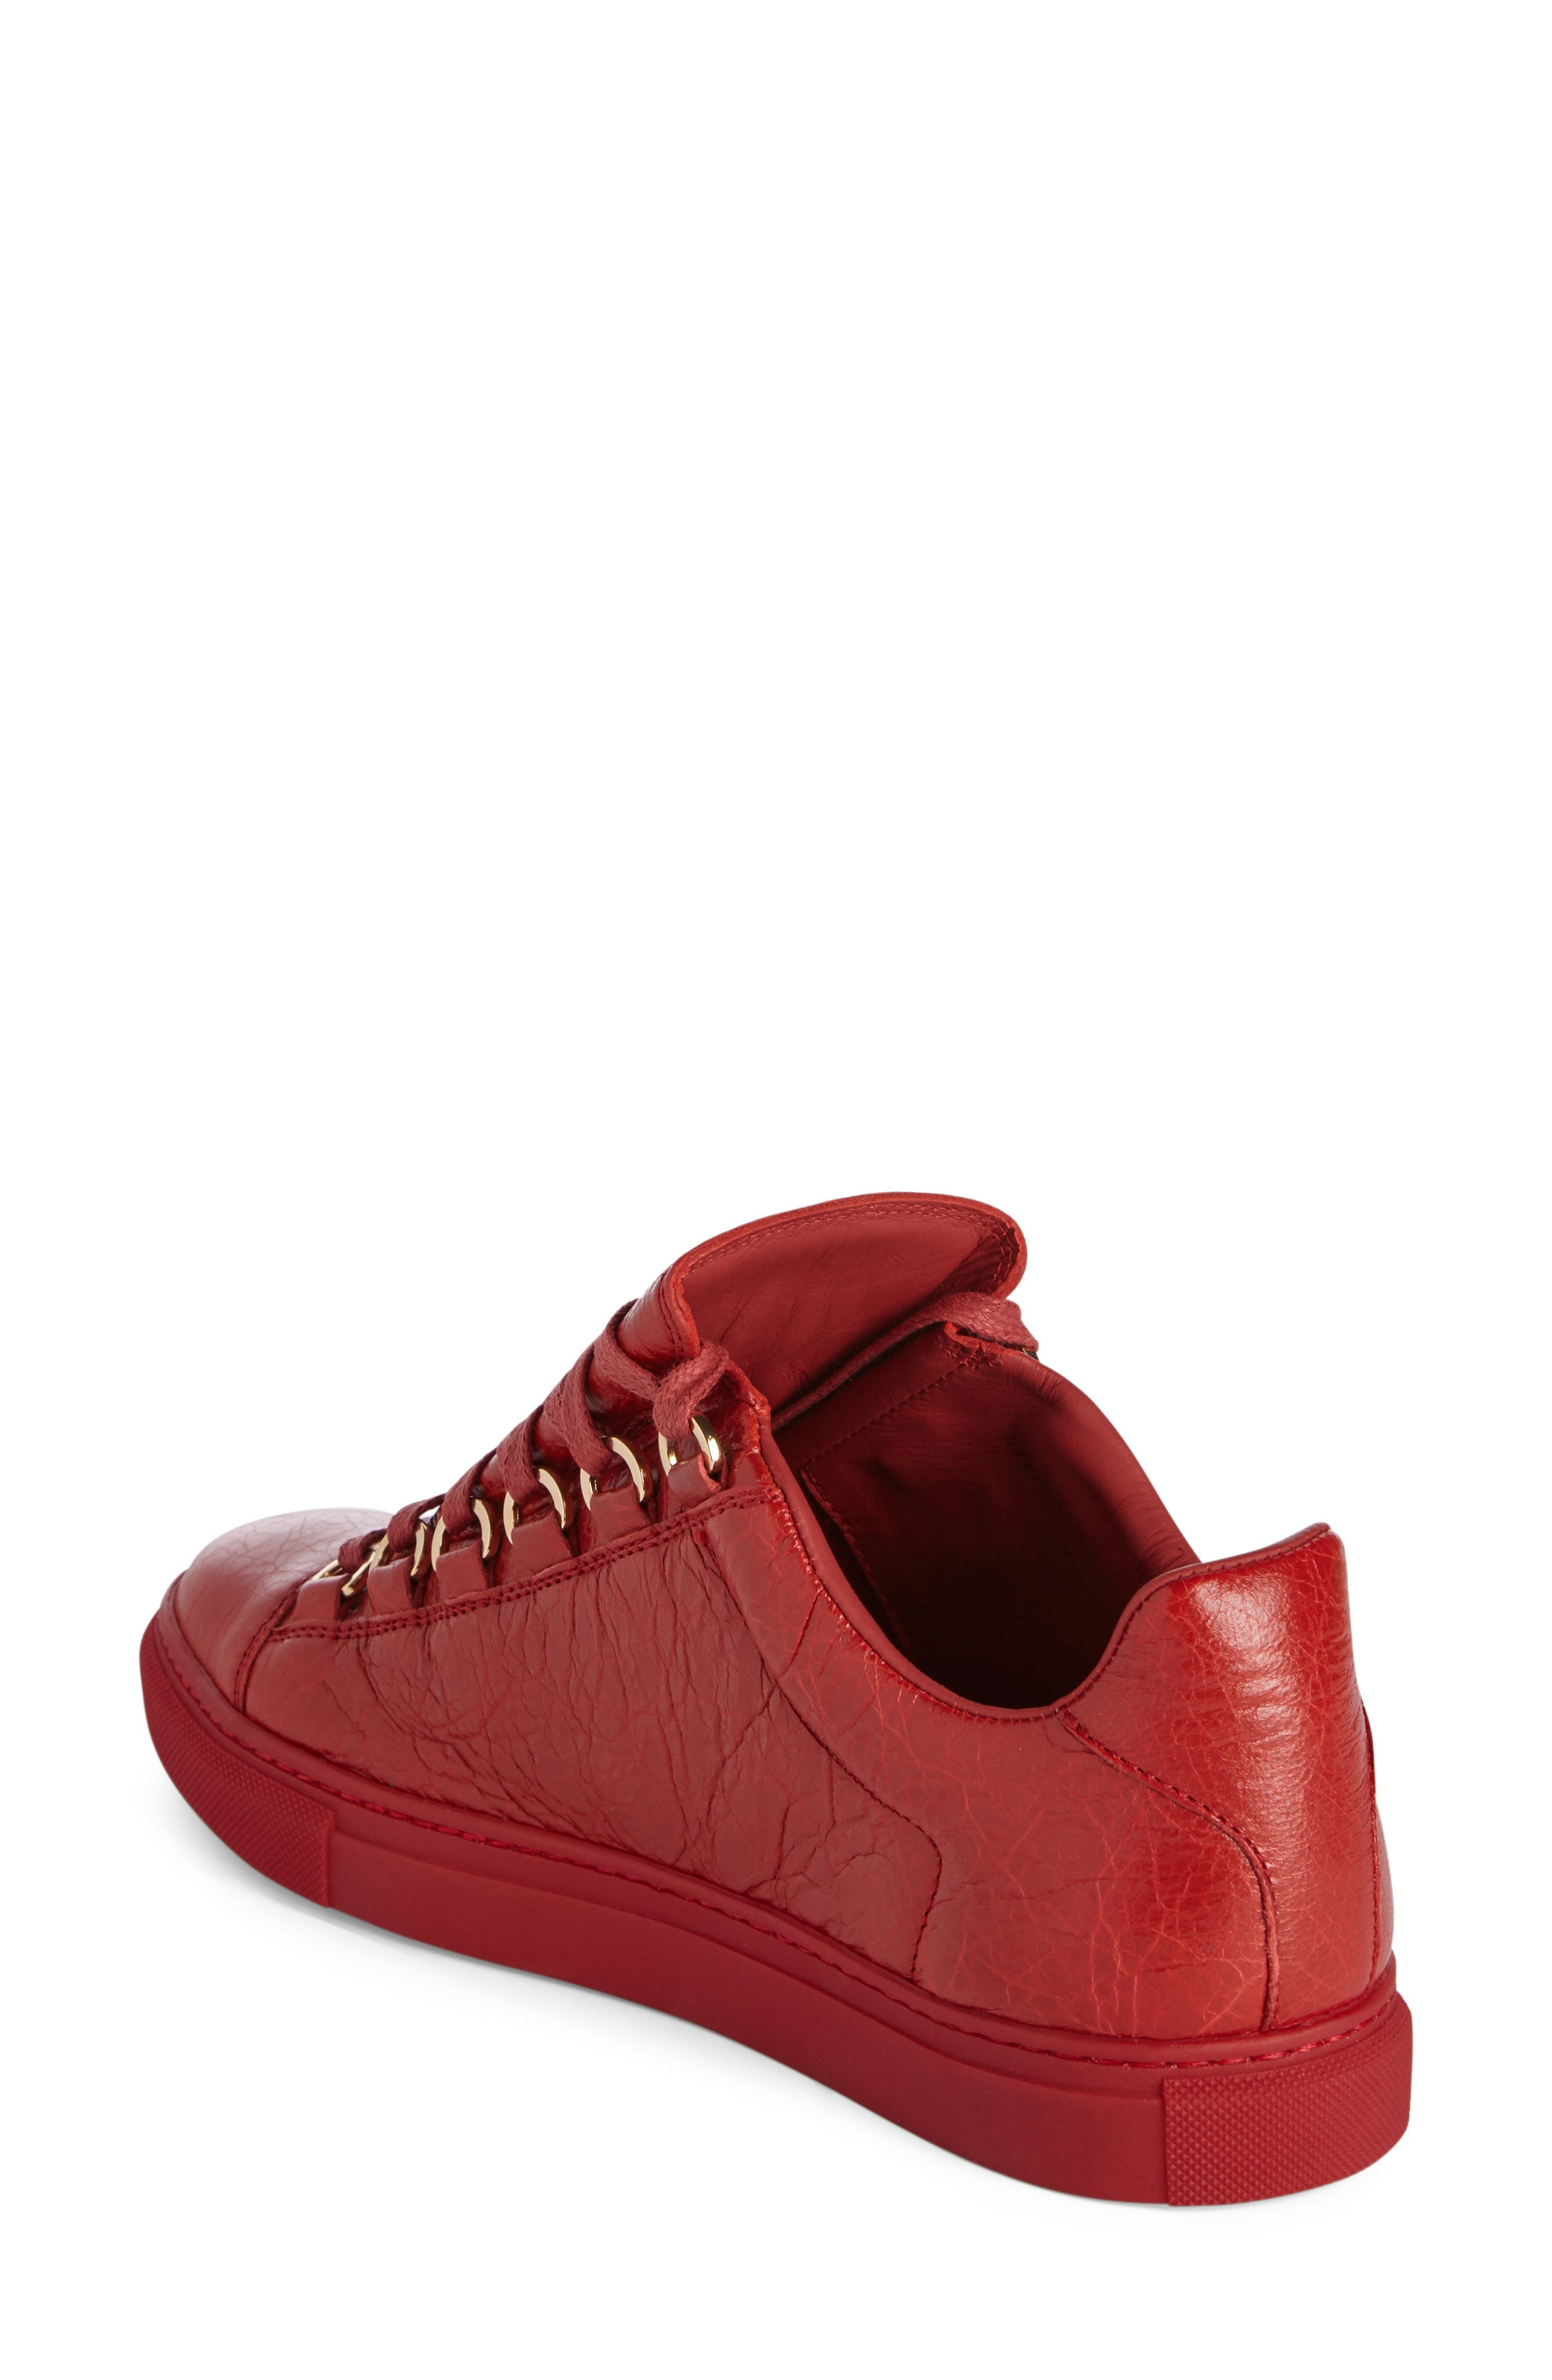 Low Top Sneaker,                             Alternate thumbnail 12, color,